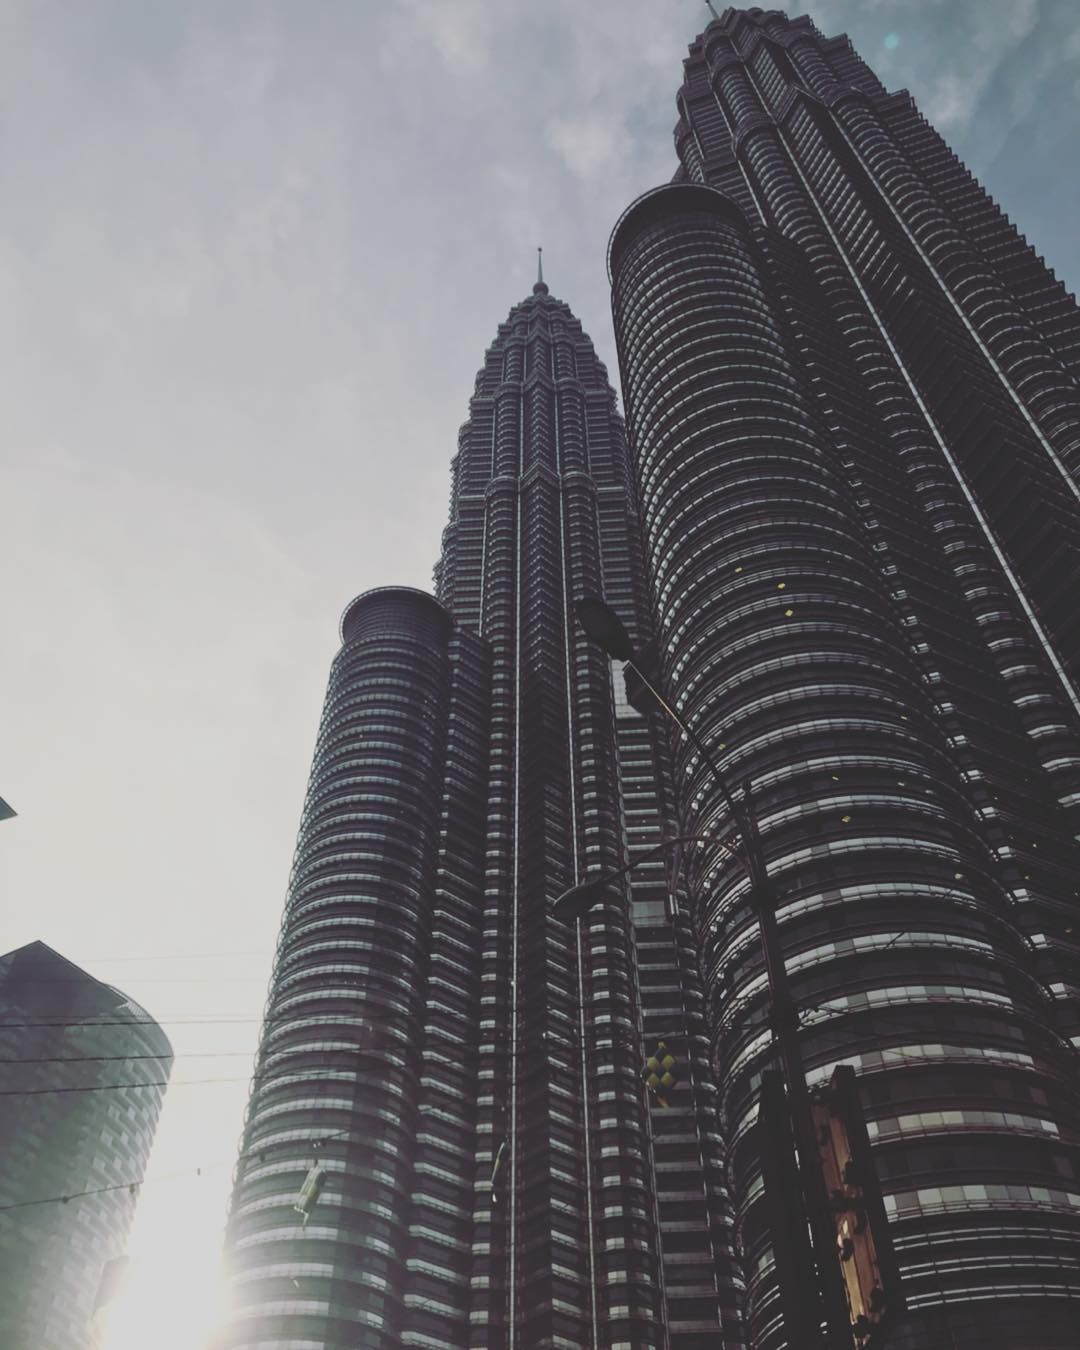 Early Morning View Of The Petronas Twin Tower At Klcc